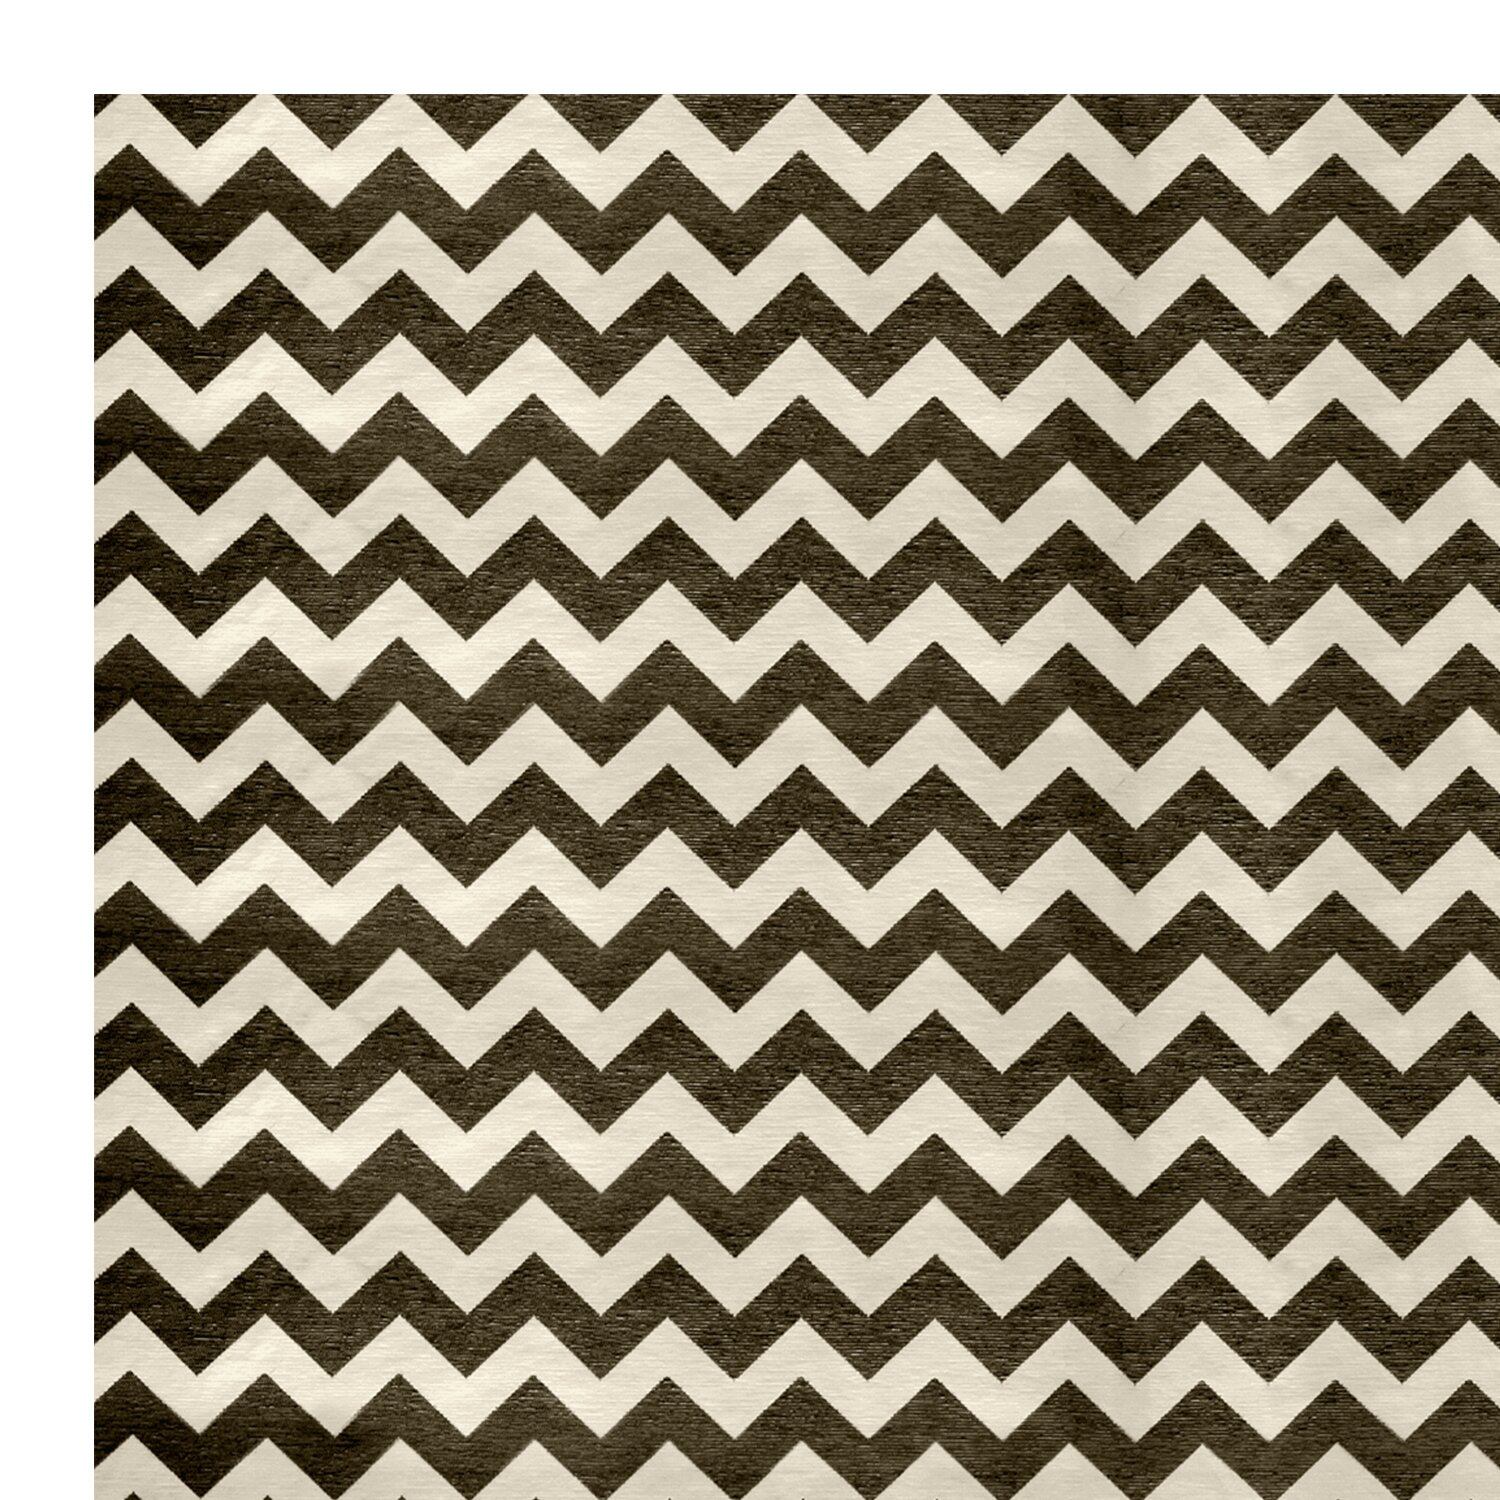 Indoor Outdoor Rugs Black And White: Ruggable Hand Woven Black And White Indoor/Outdoor Area